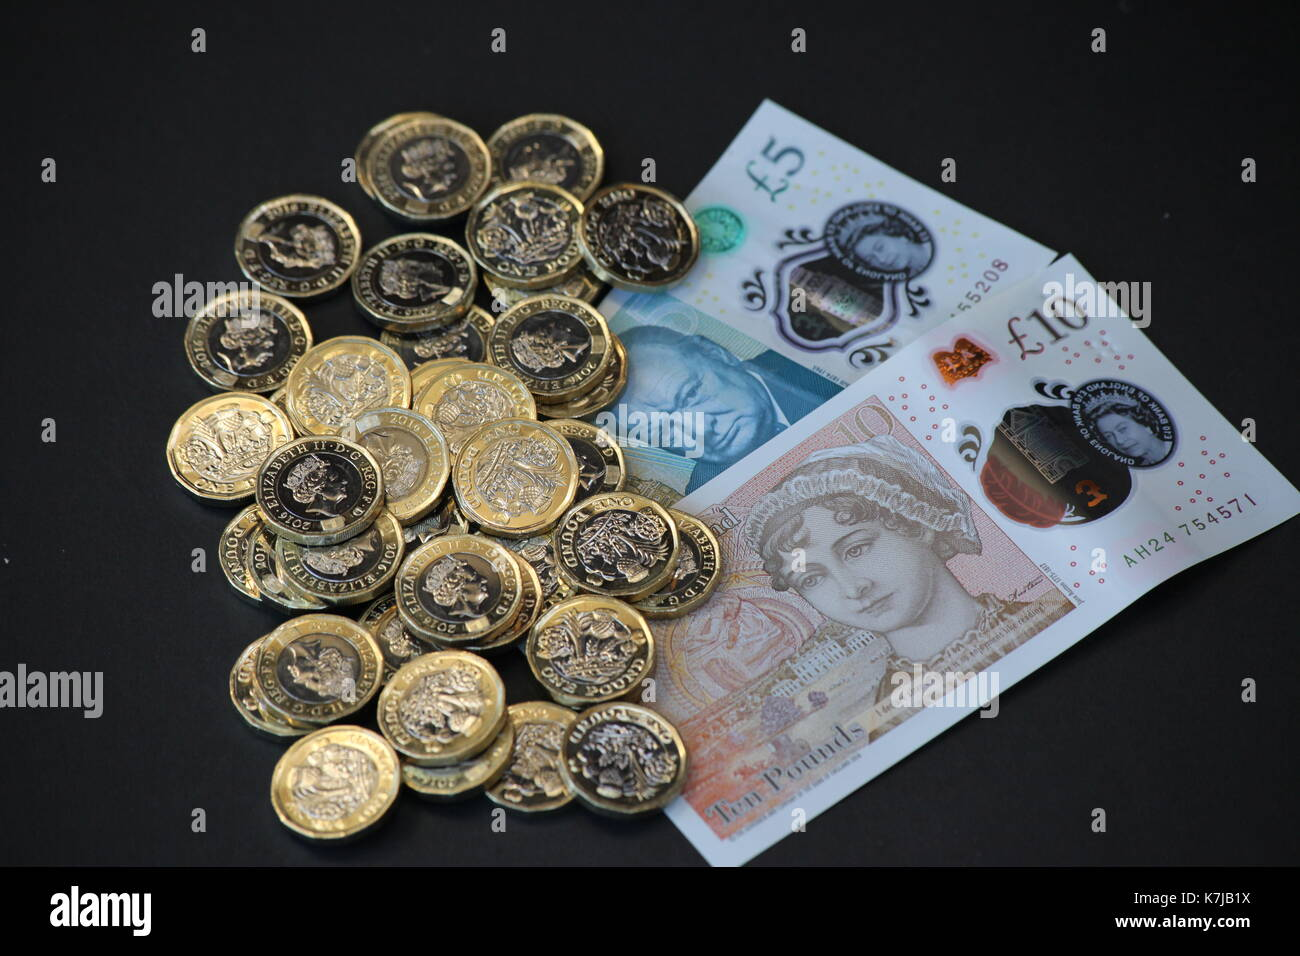 New 2017 Notes and Coins - Stock Image